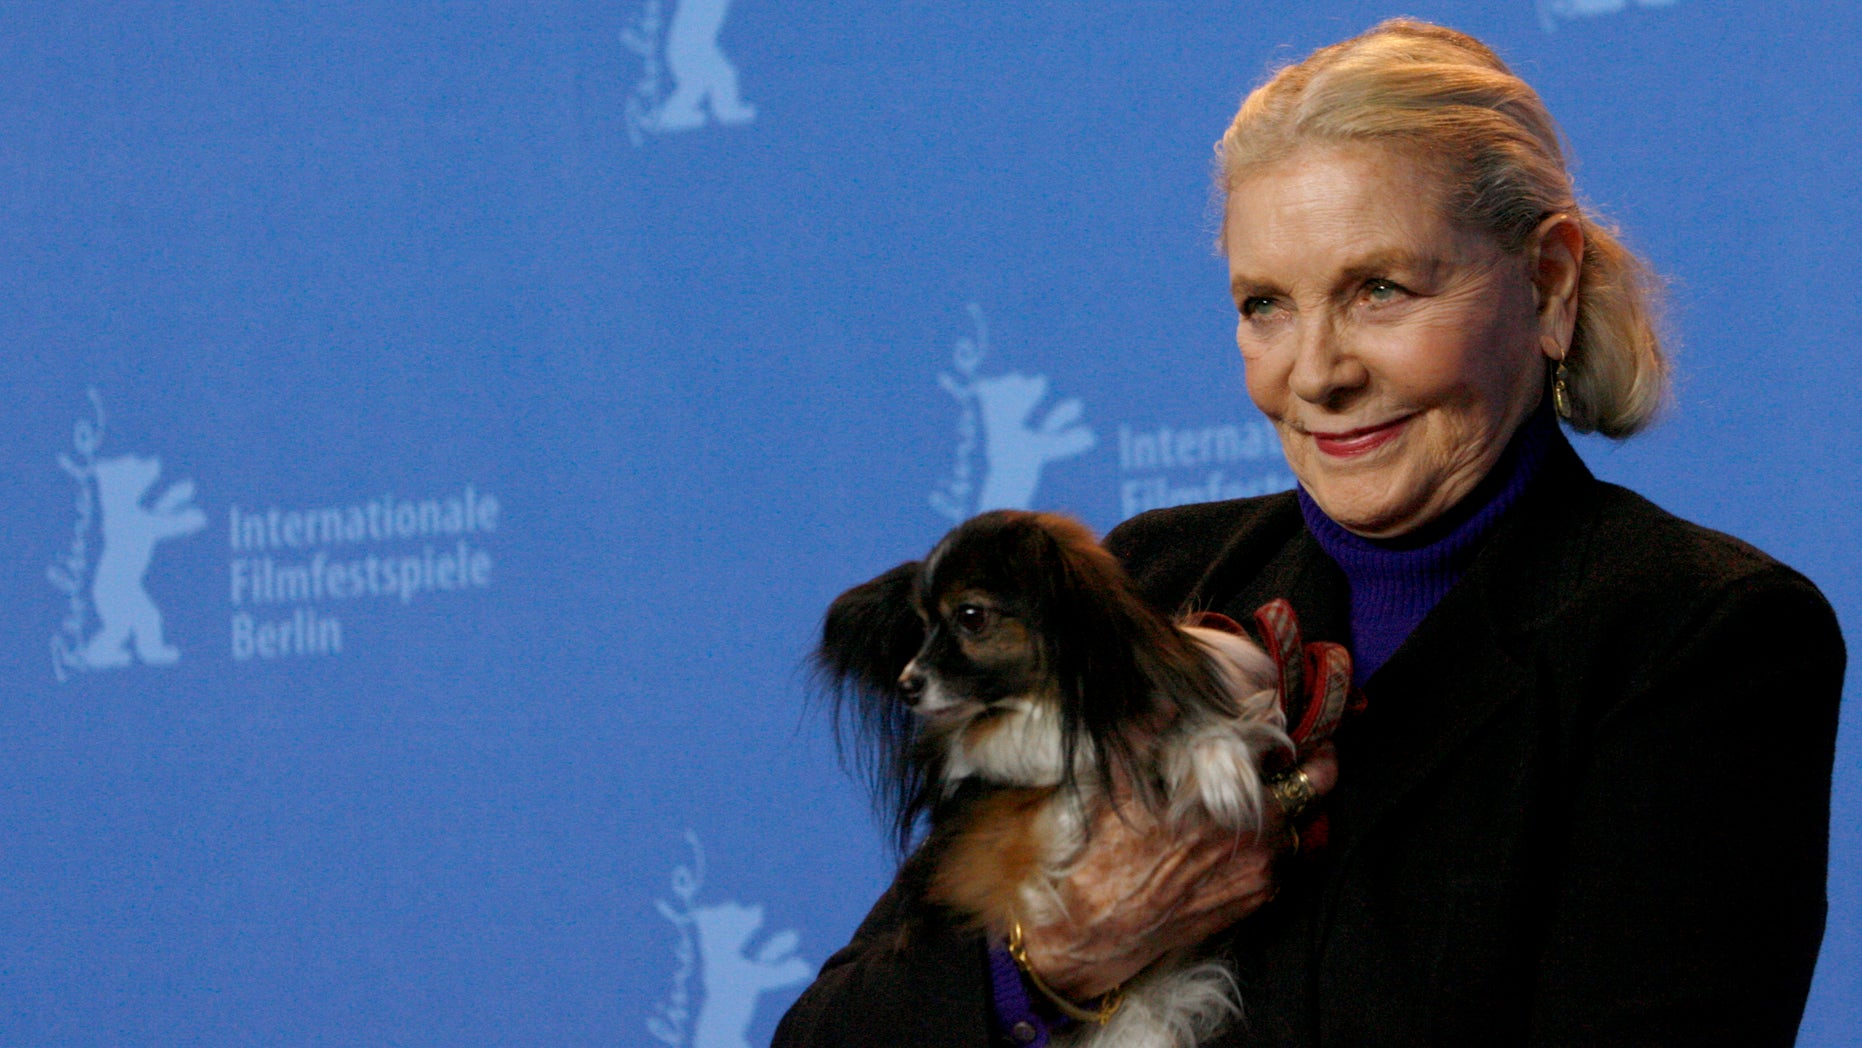 February 13, 2007. U.S actress Lauren Bacall poses with her dog Sophie at the 57th Berlinale International Film Festival in Berlin.